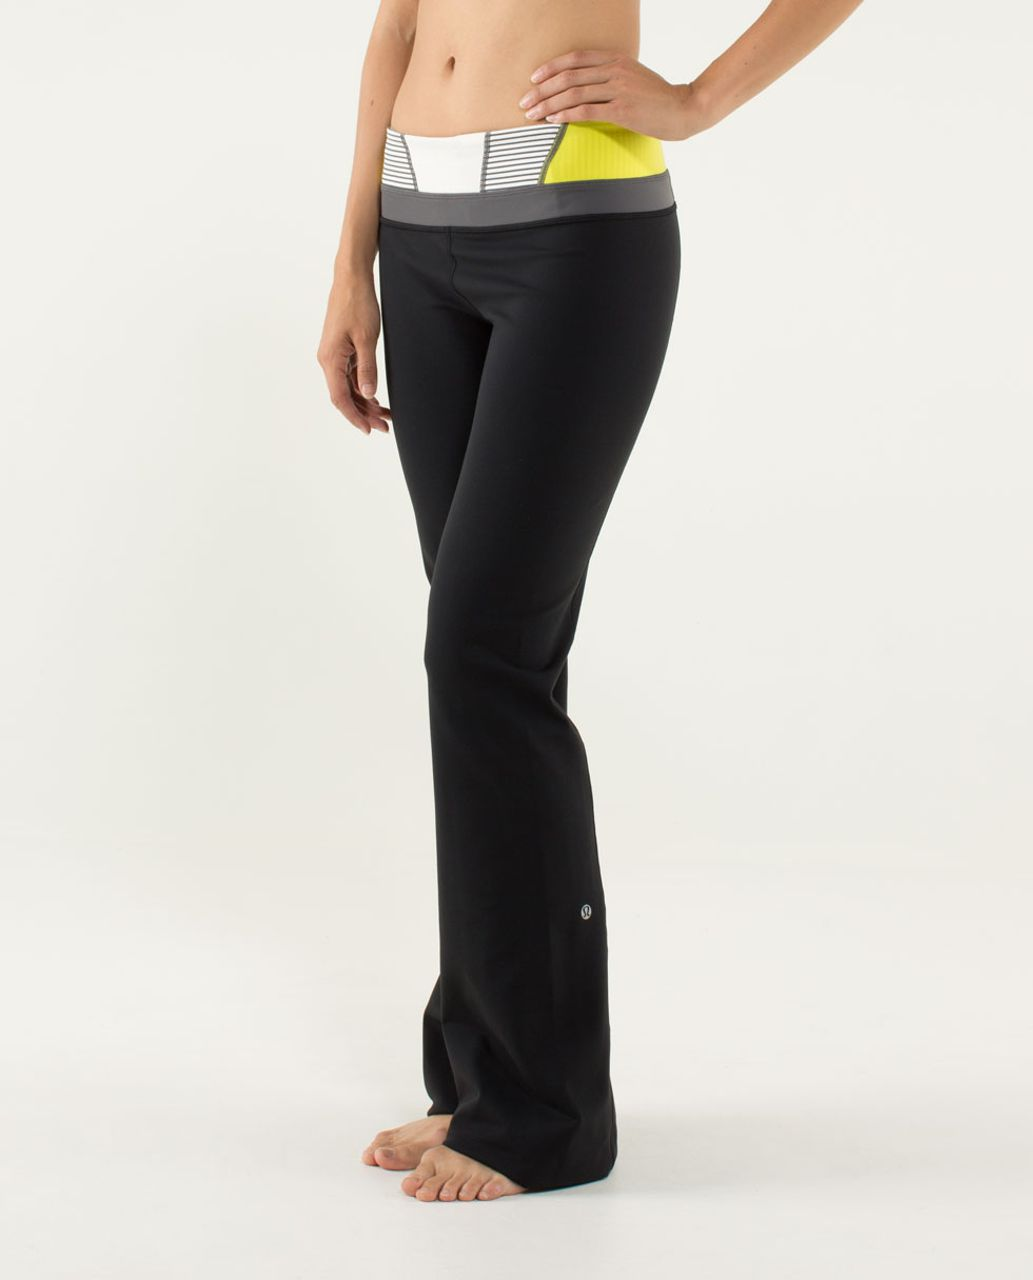 Lululemon Groove Pant (Tall) - Black / Quilt 07 Fall 2013